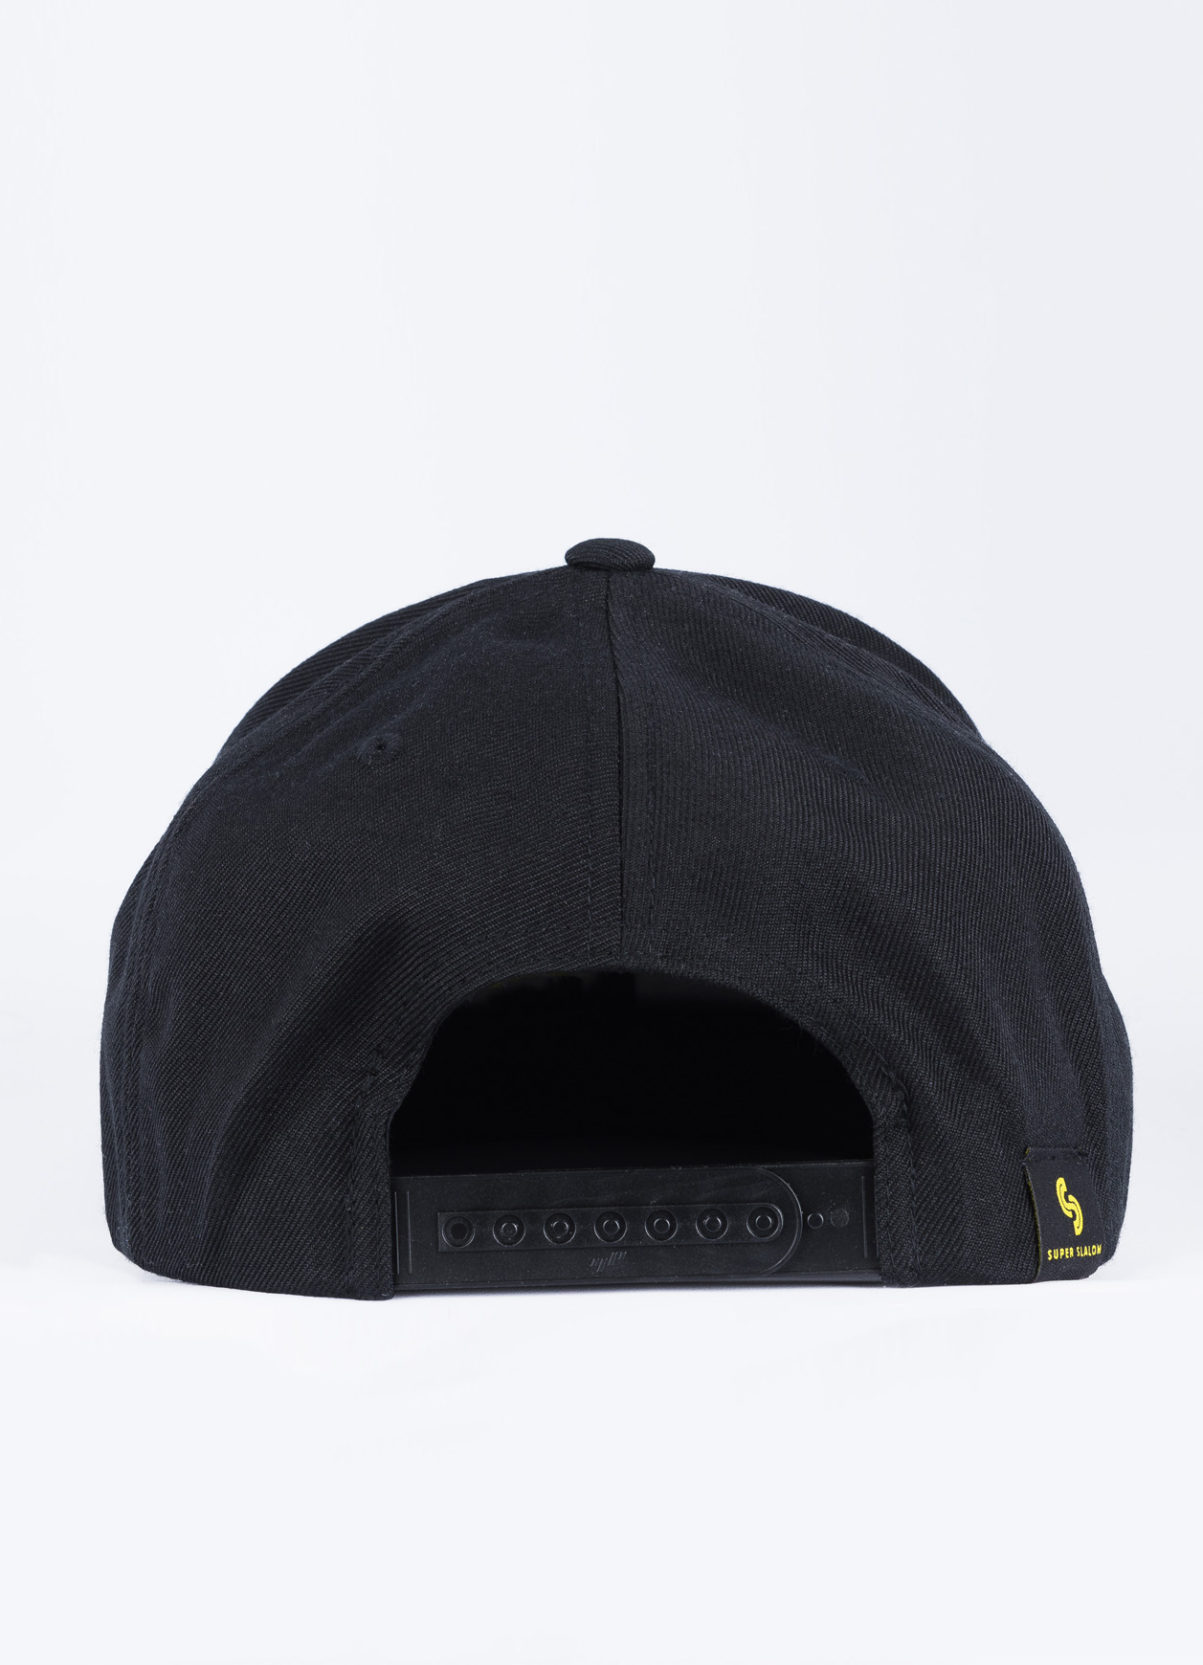 casquette-back-black-2